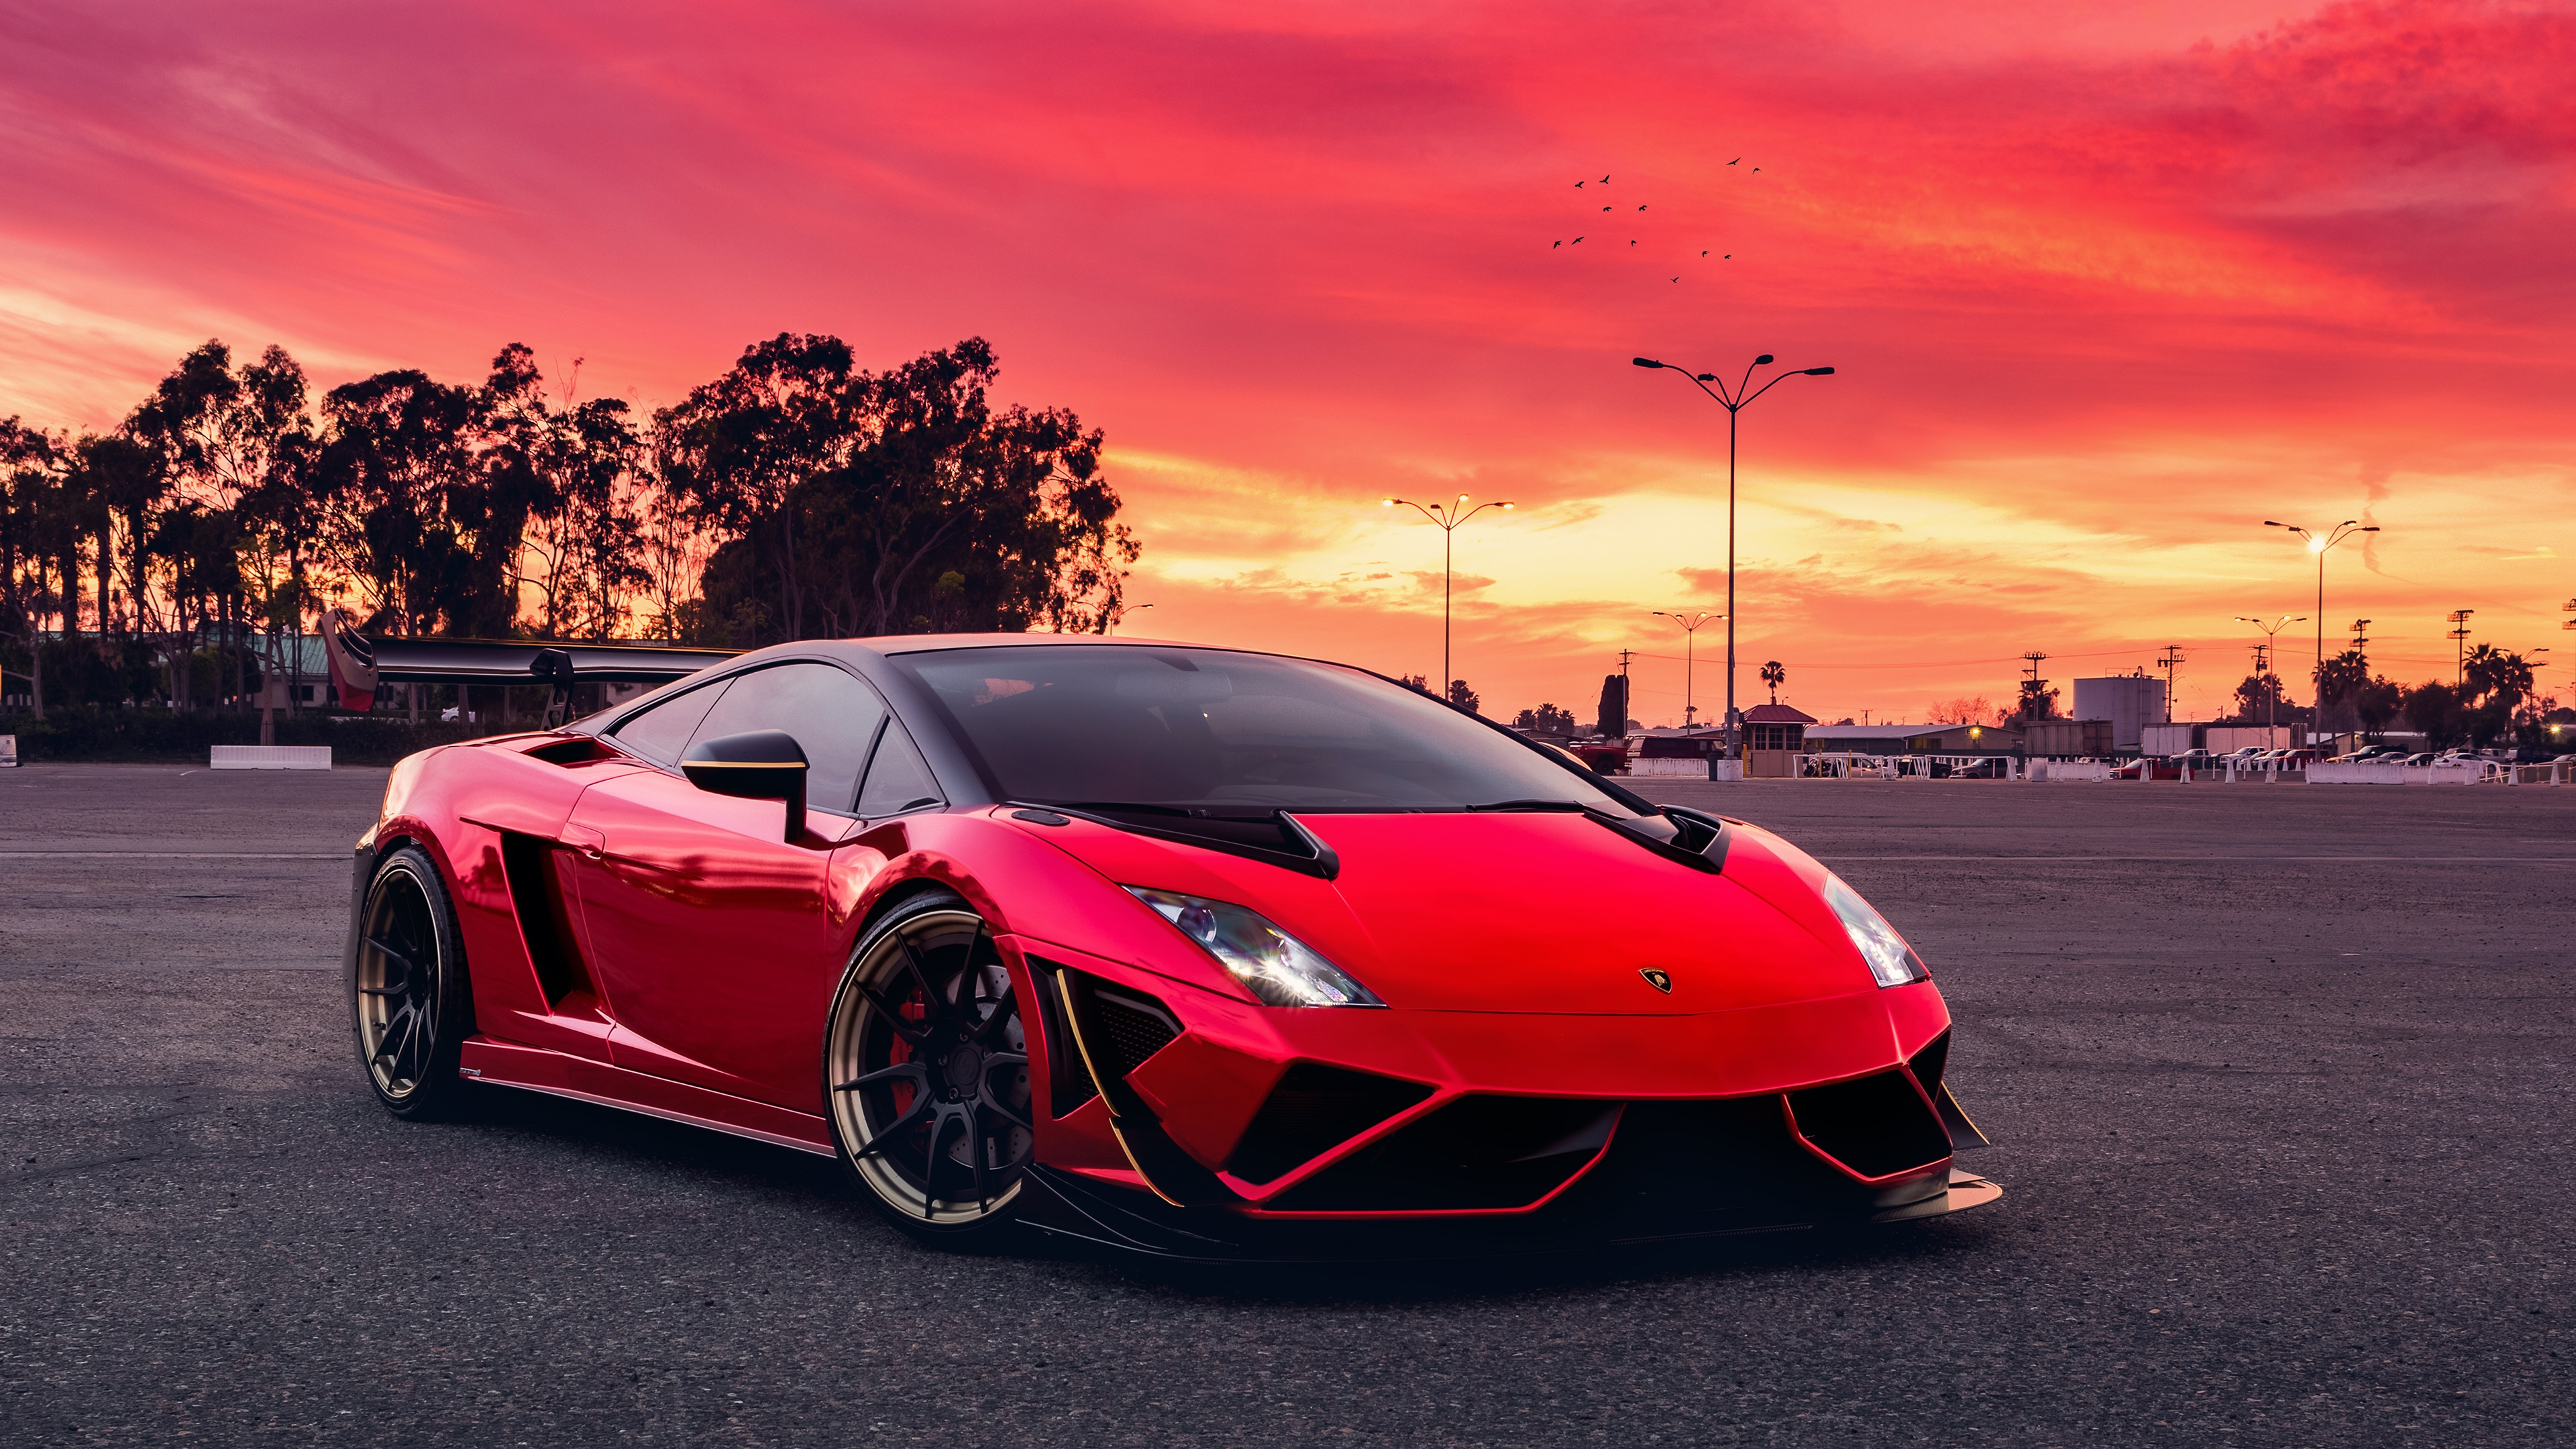 Red Lamborghini Gallardo, HD Cars, 4k Wallpapers, Images